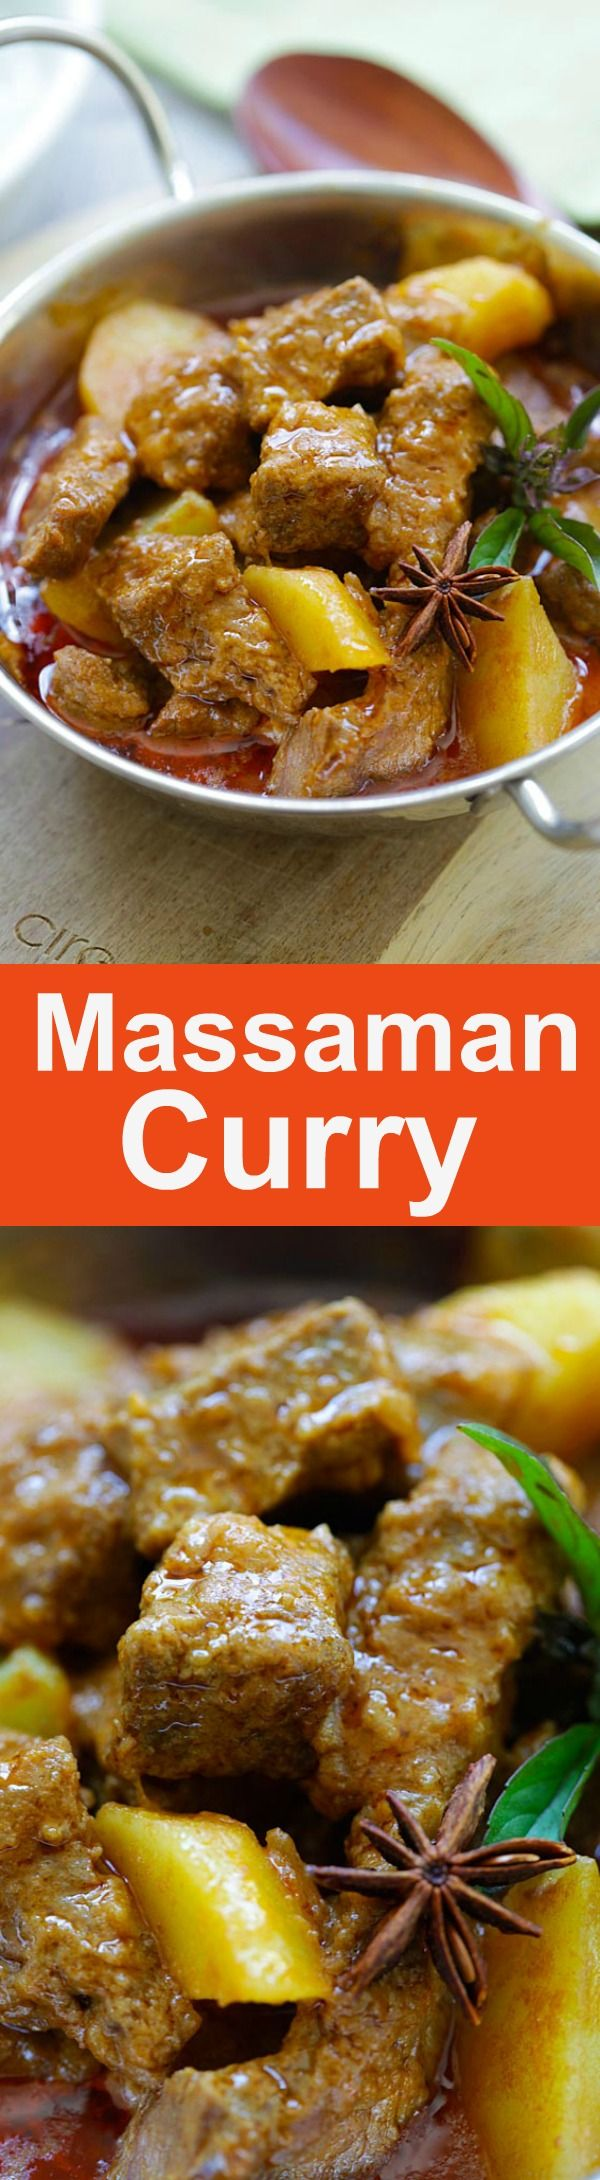 201 best thai indonesian images on pinterest cooking food asian beef massaman curry crazy delicious thai beef massaman curry learn how to make massaman tamarind recipesthai food forumfinder Gallery